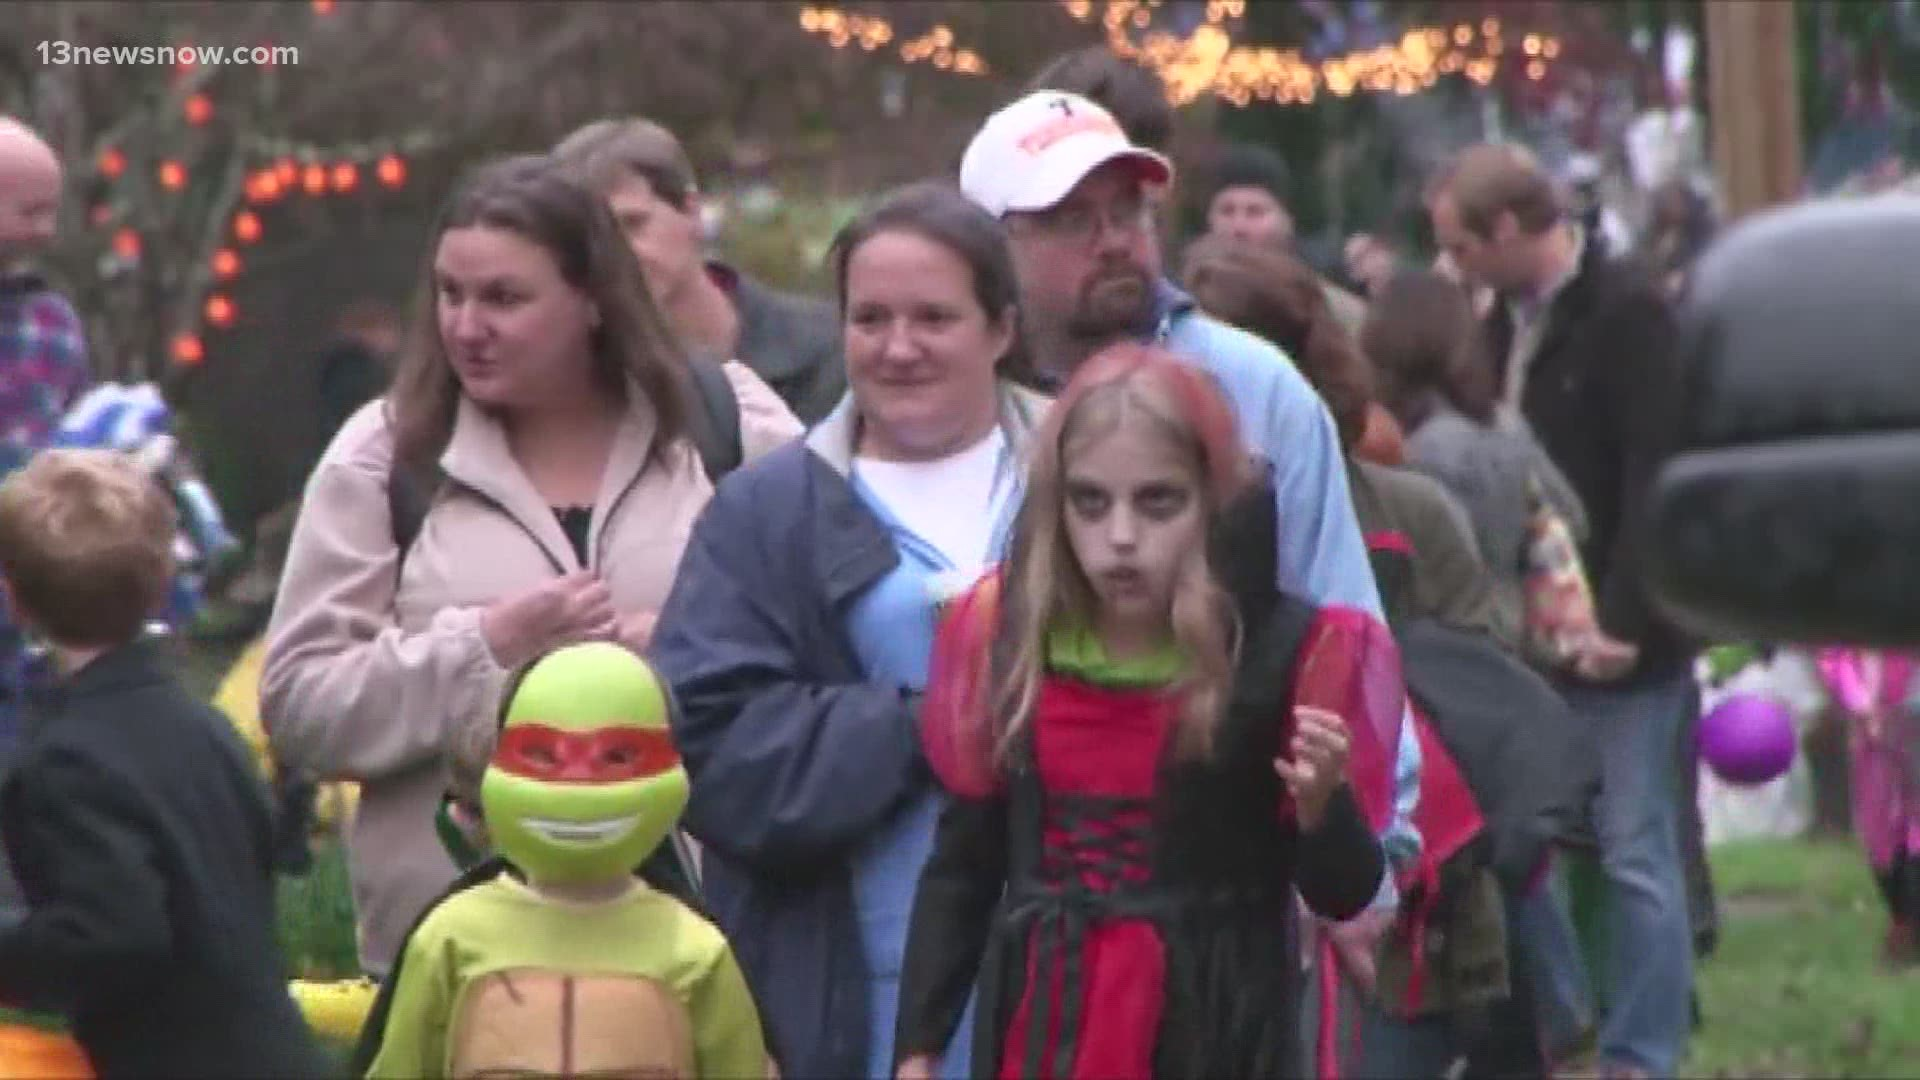 Boise Halloween Events 2020 Is Halloween canceled this year? | ktvb.com